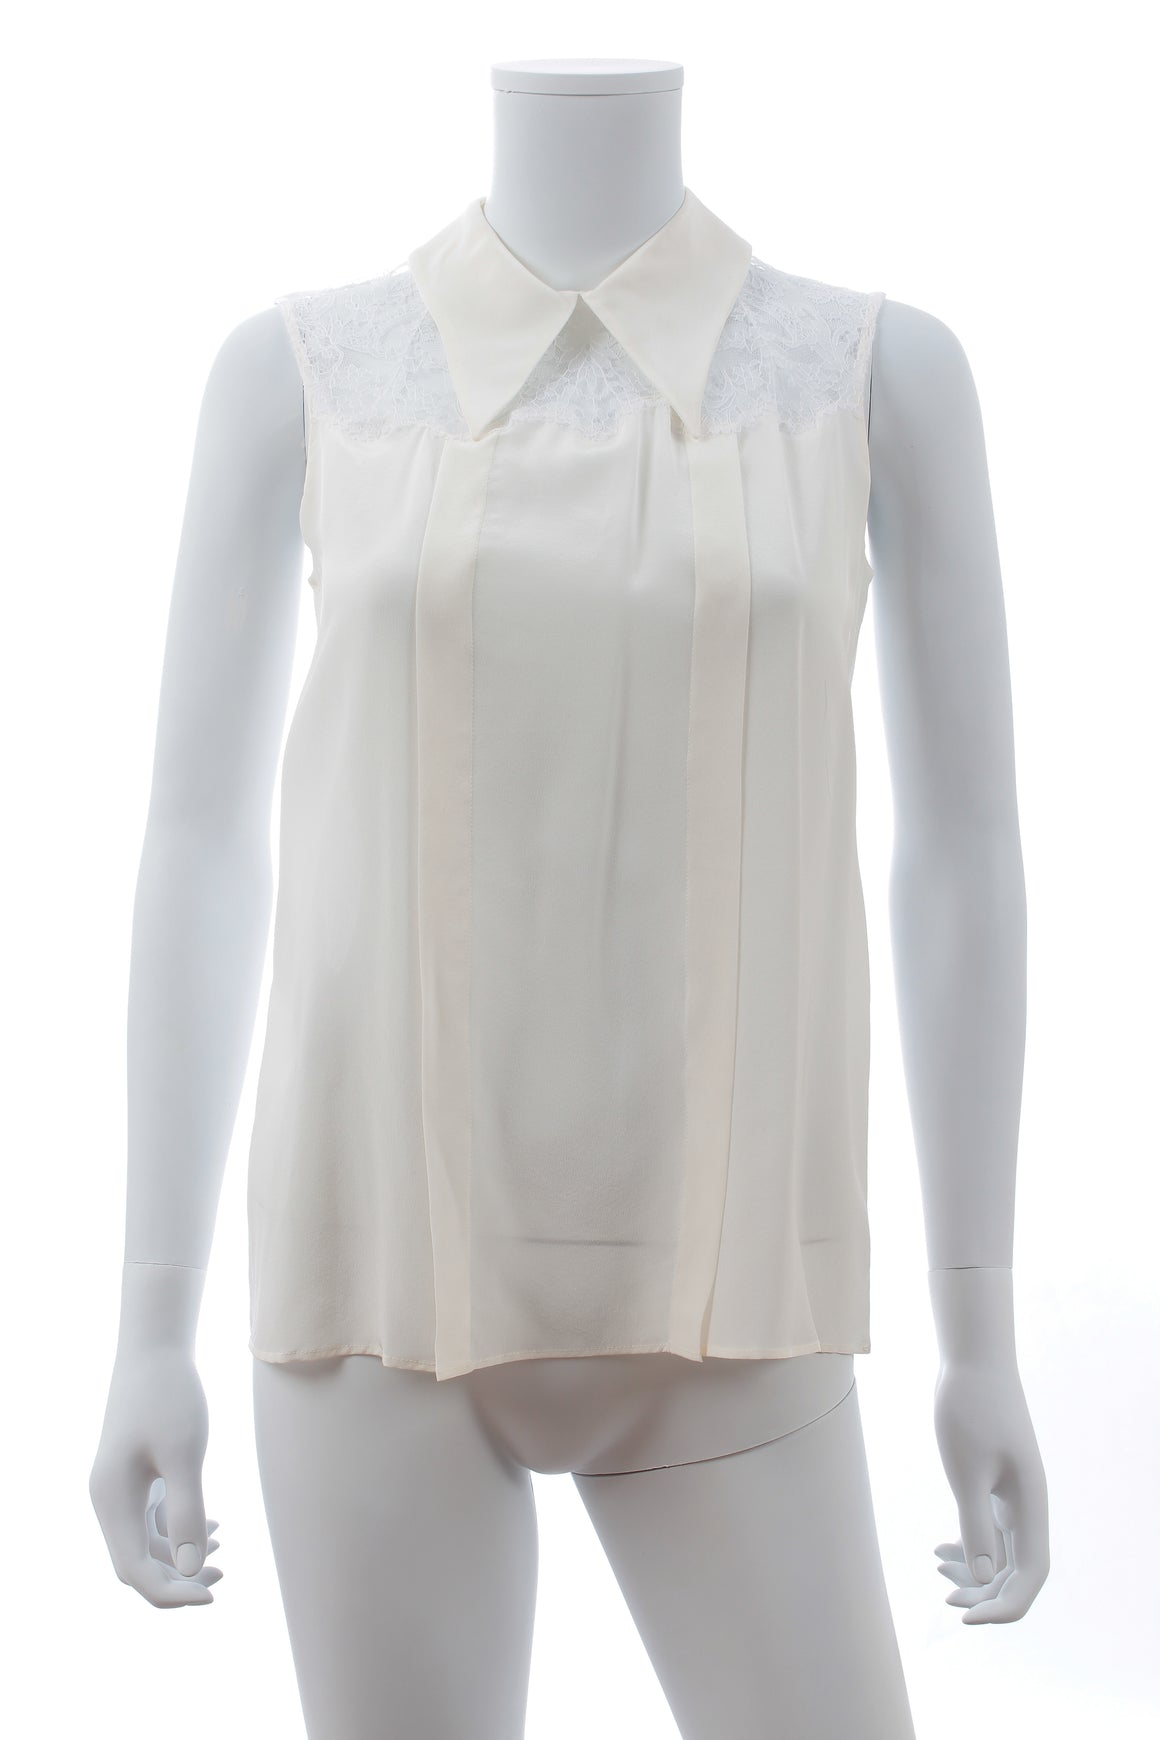 Miu Miu Lace-Trimmed Silk Sleeveless Blouse